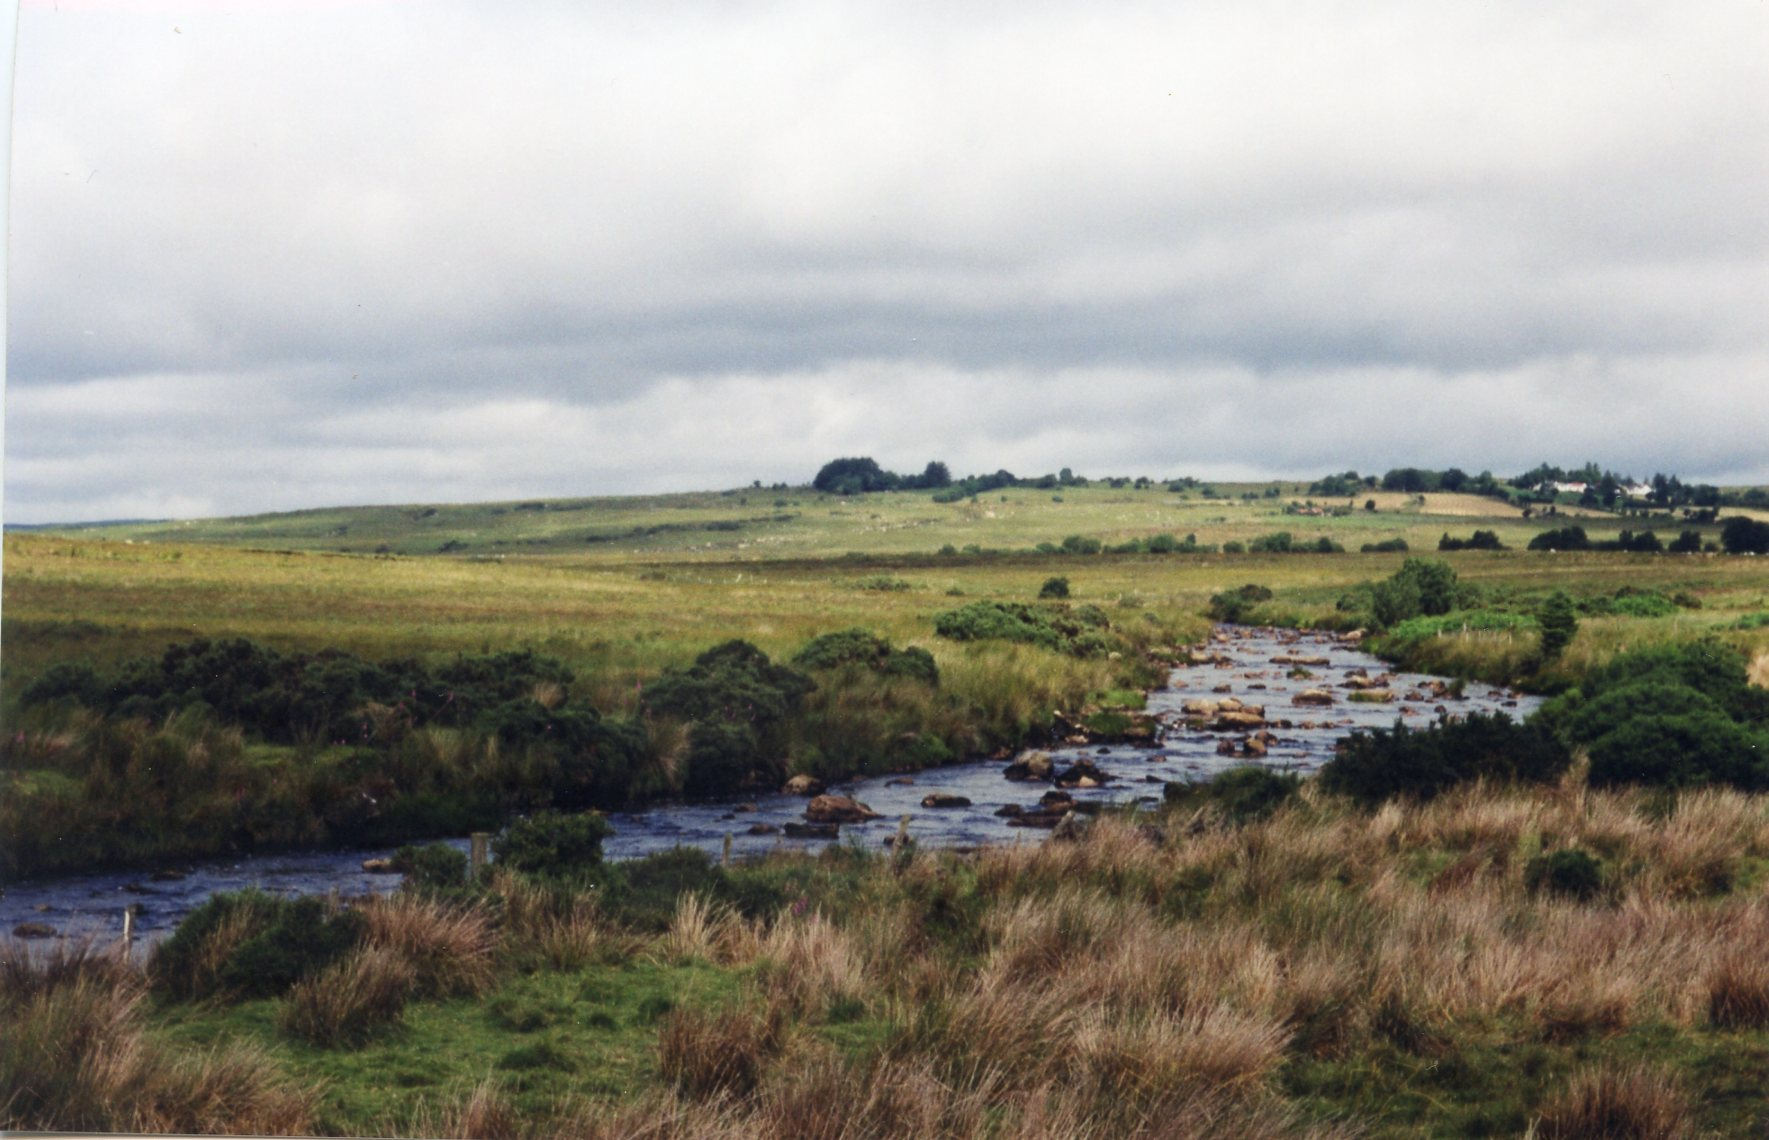 The Mourne Beg River at Meenreagh